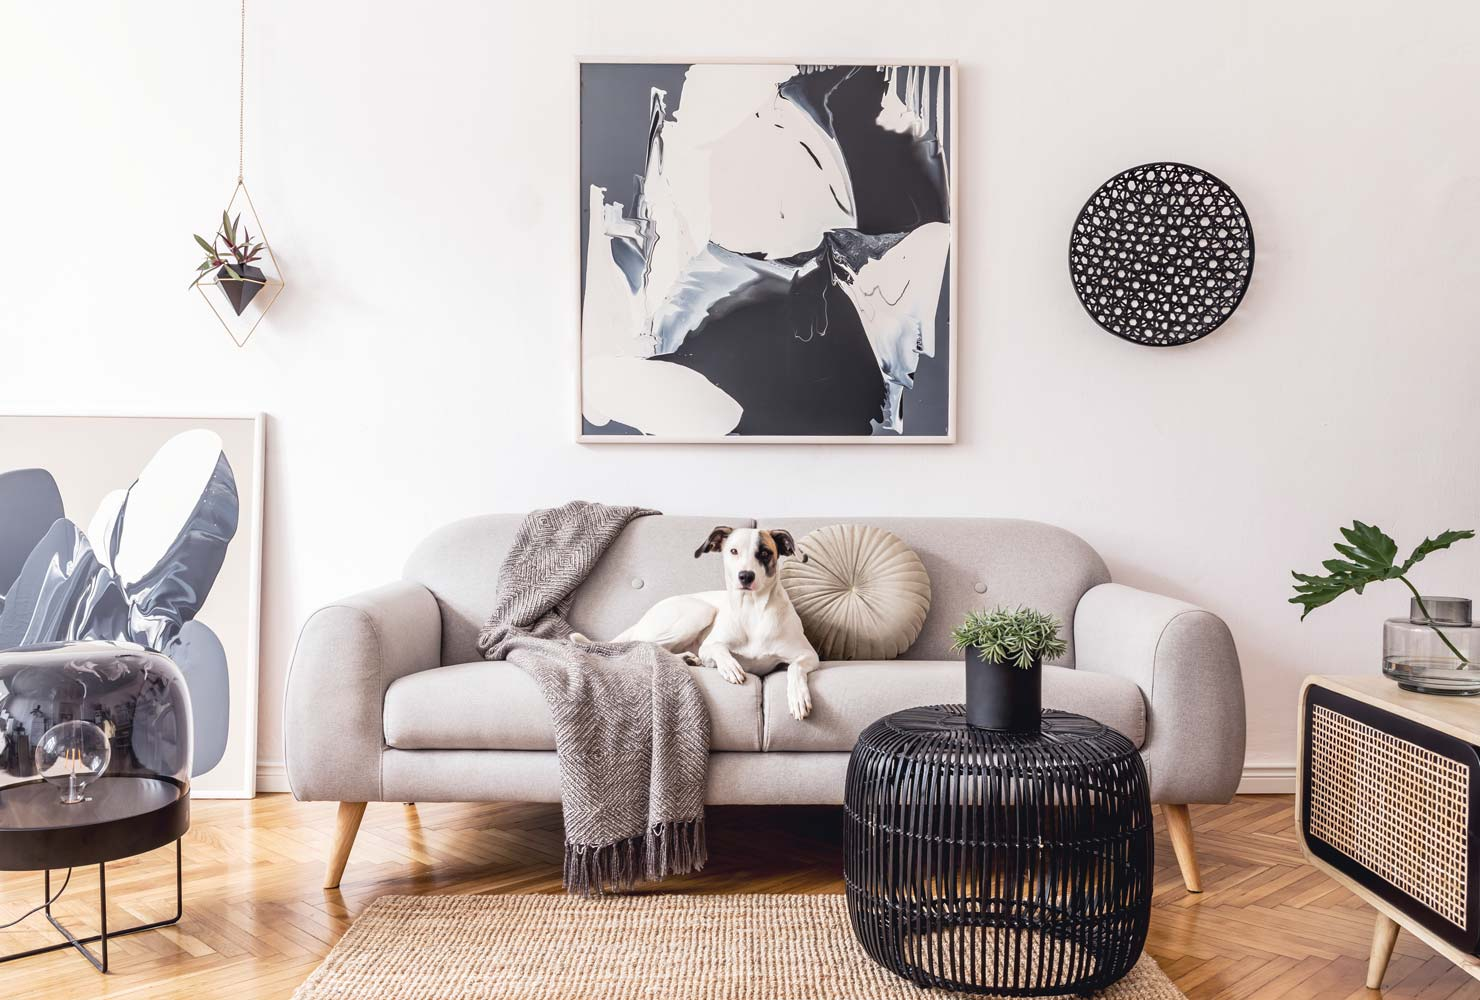 Neutral living room couch and wall decor.